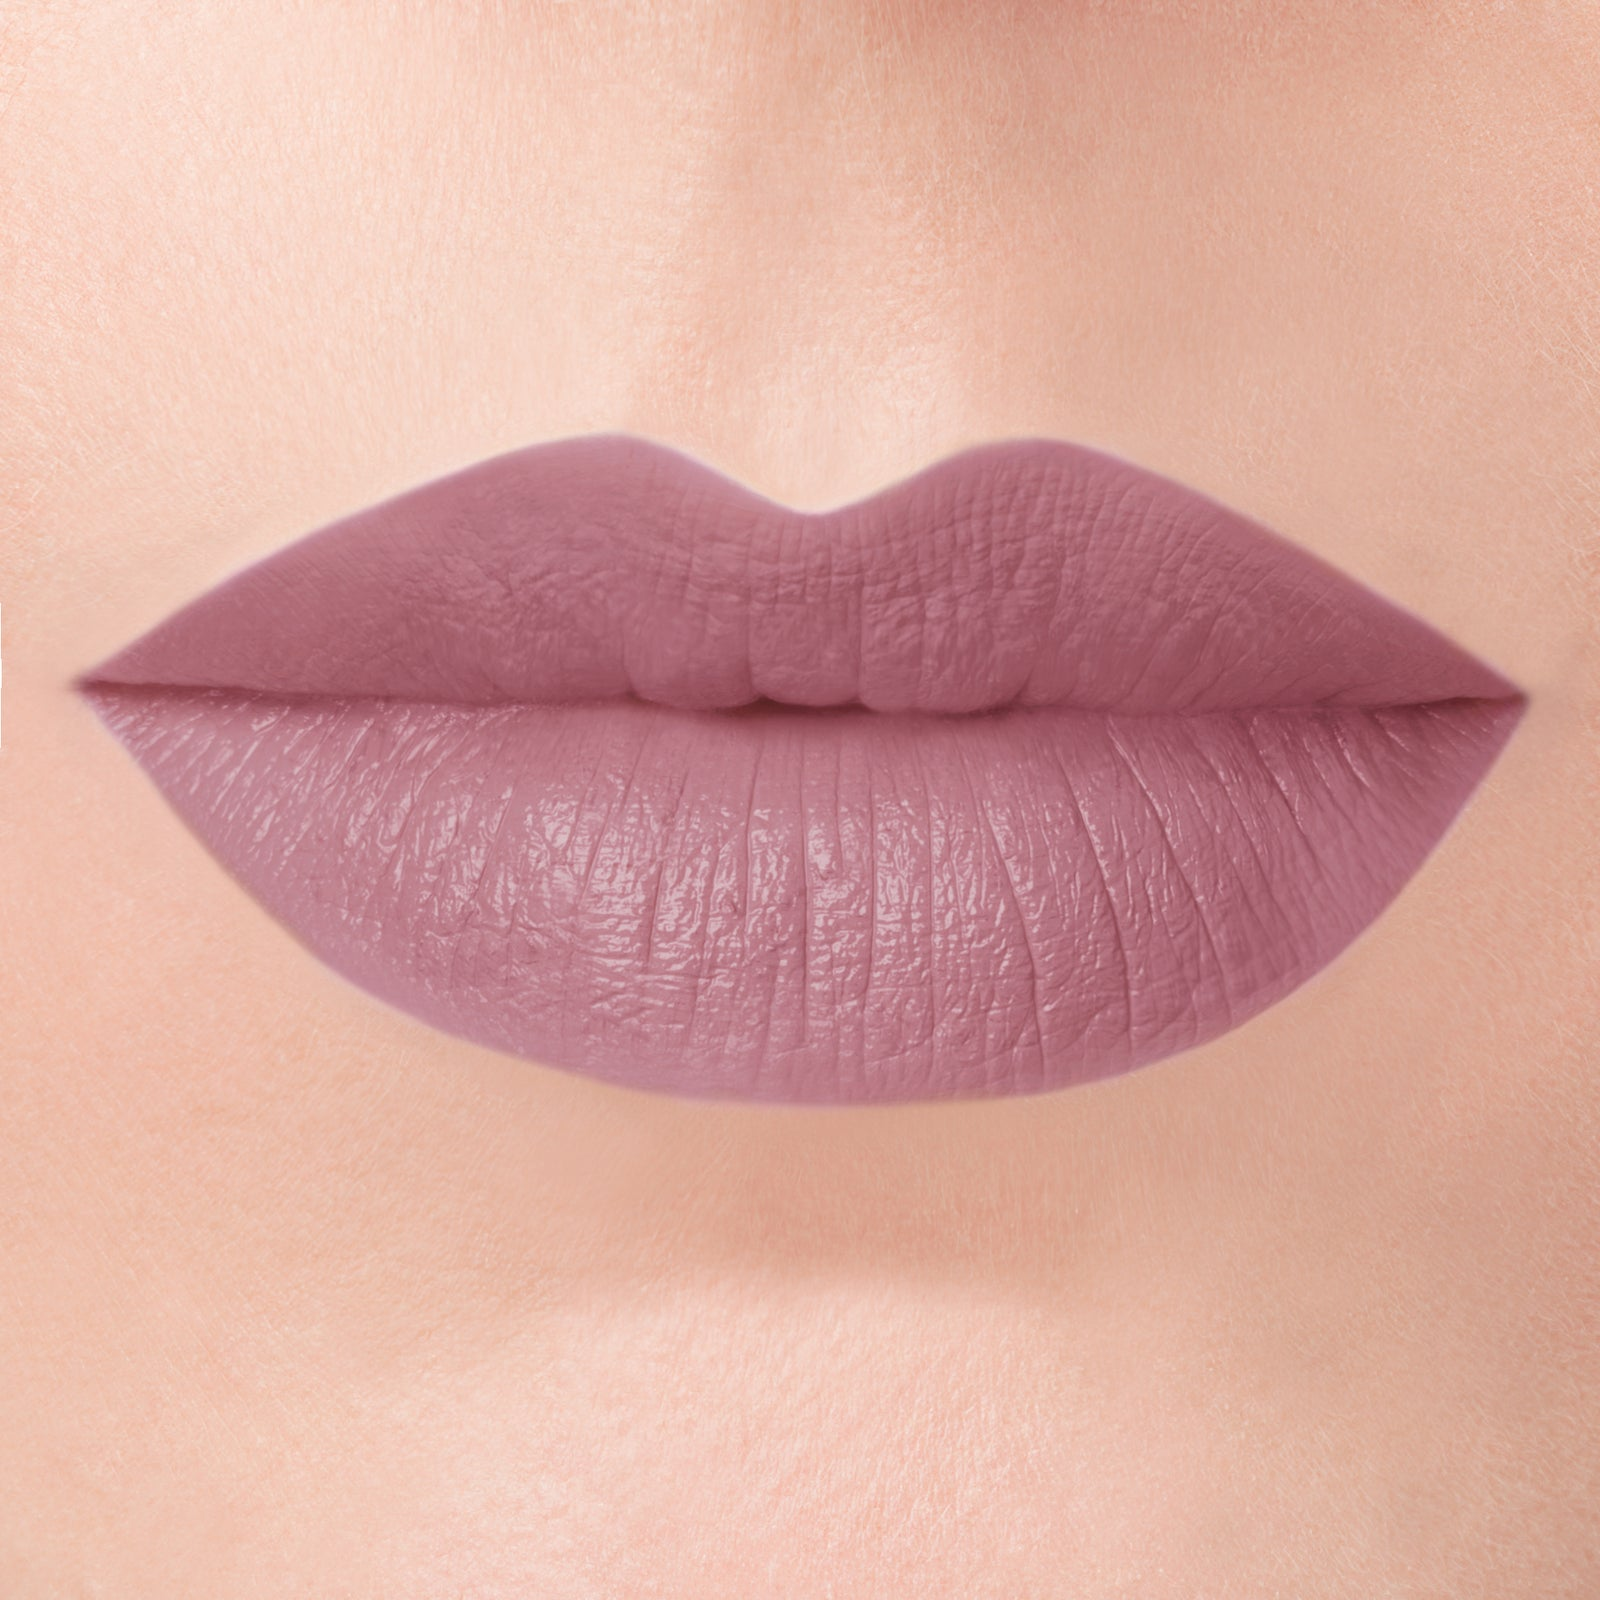 Hex cruelty free natural lipstick swatch